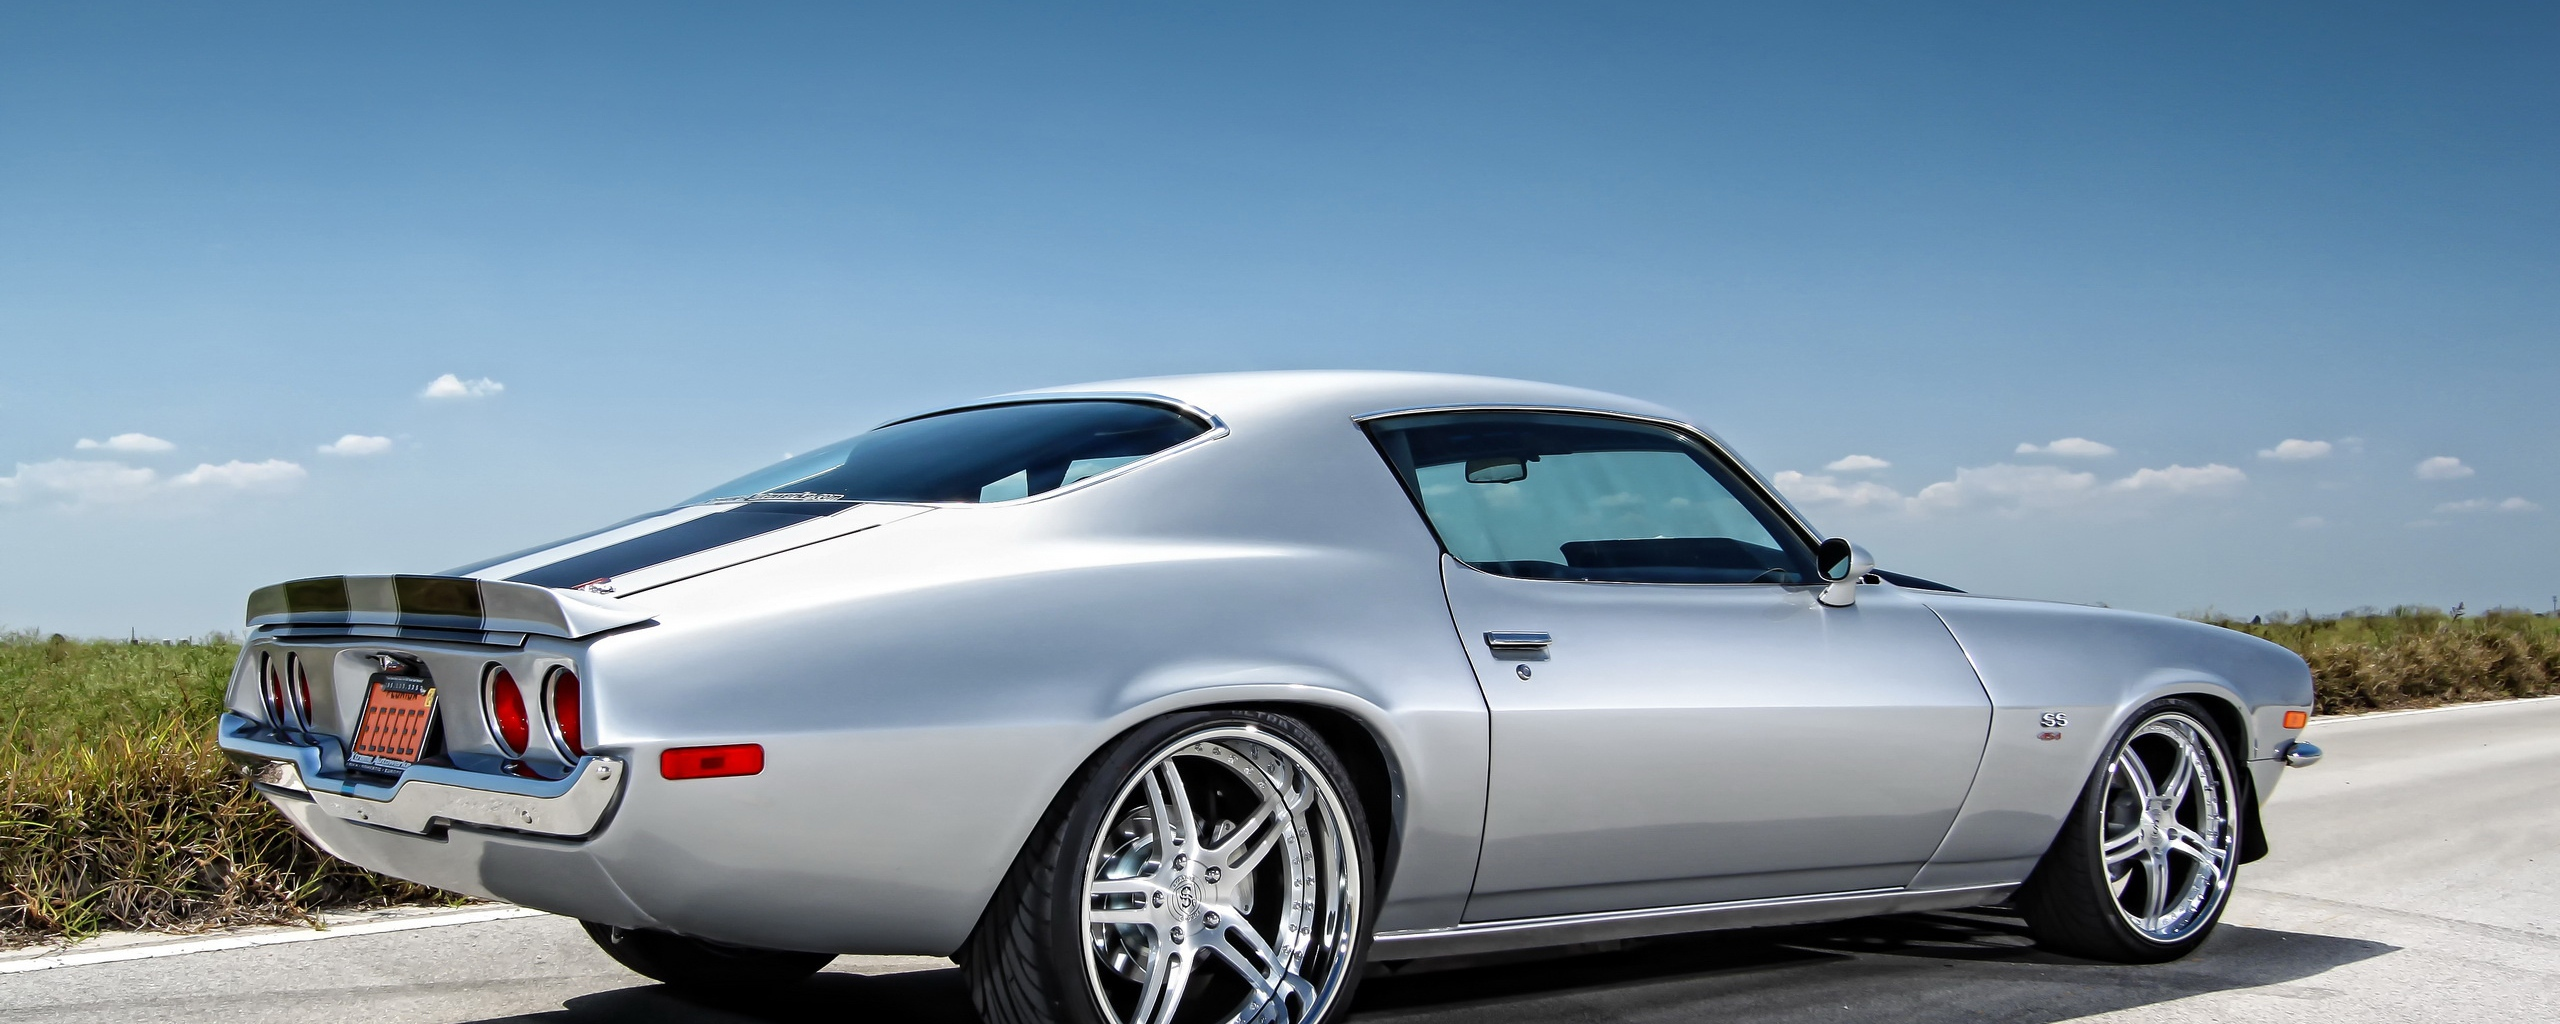 muscle car chevrolet camaro Dual Monitor Resolution HD Background 2560x1024